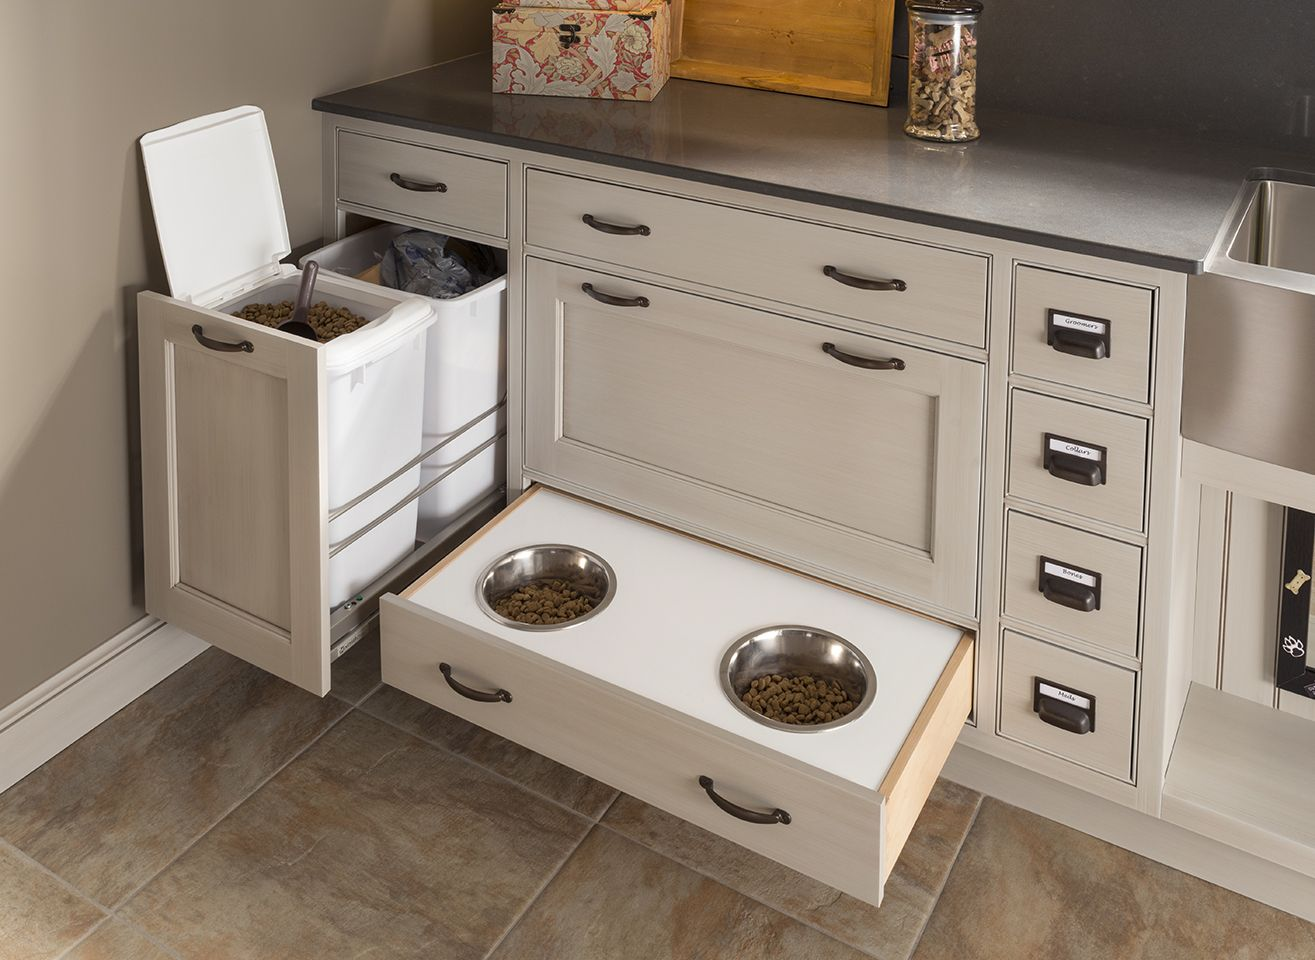 10 mind-blowing drawers everyone needs in their home   mike's pins